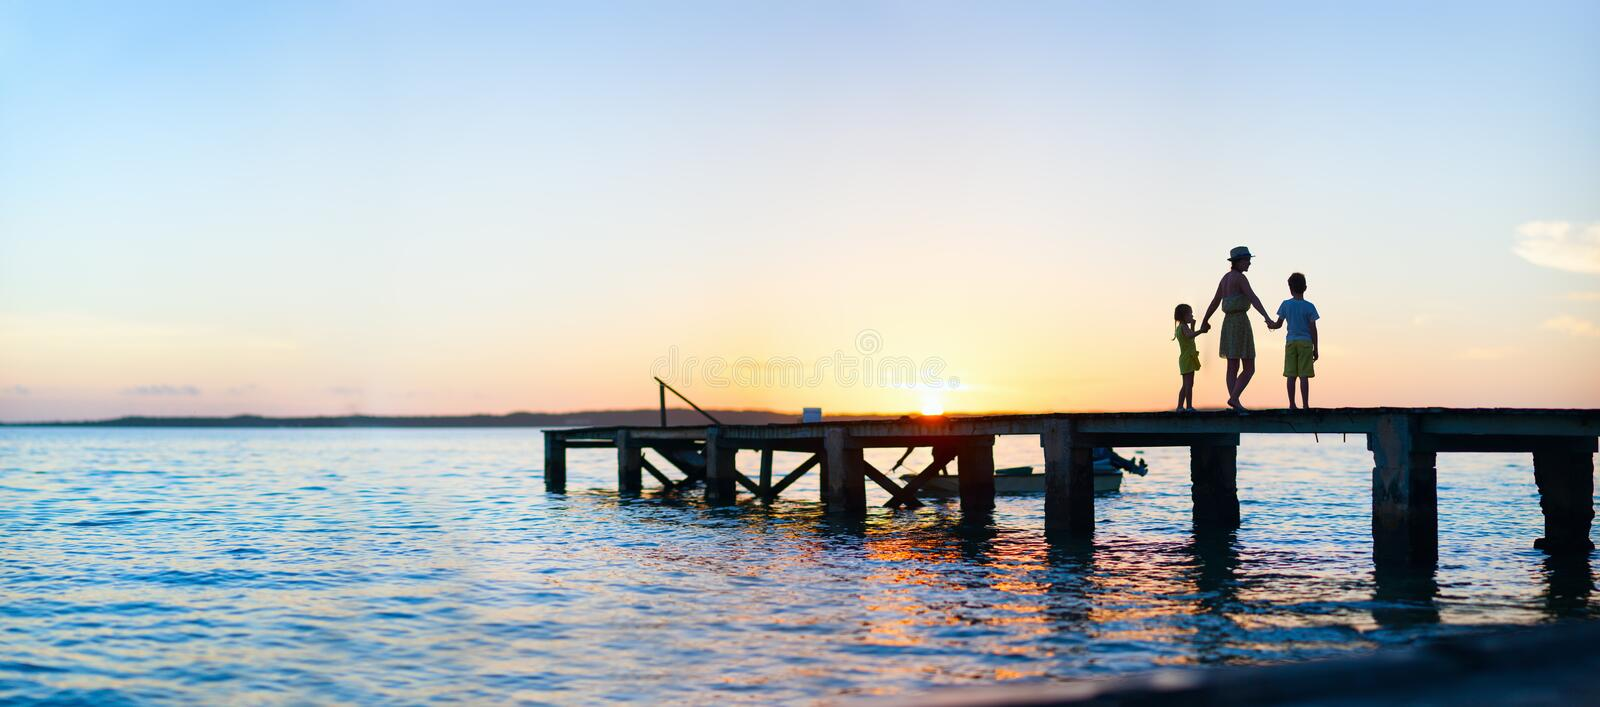 Family sunset silhouettes. Family silhouettes on a bridge at sunset stock photos